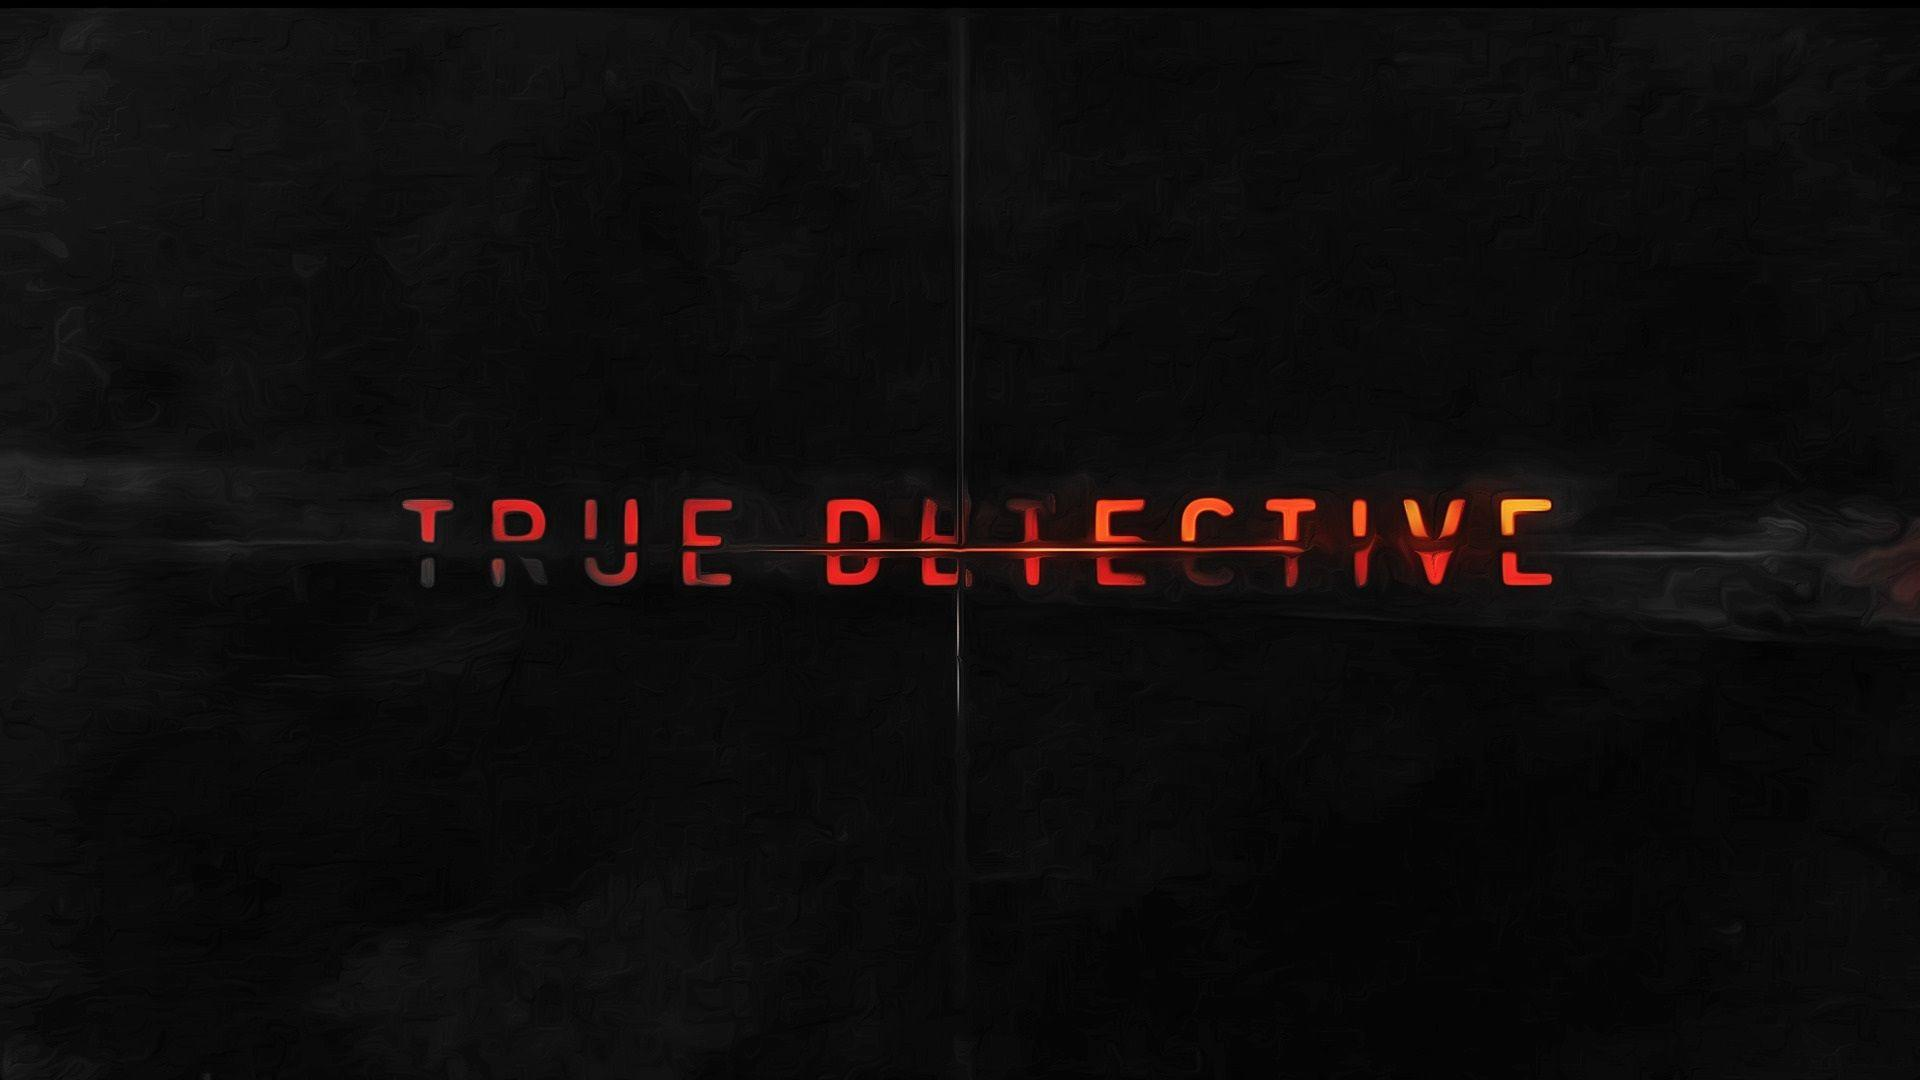 True Detective HD Wallpapers and Backgrounds